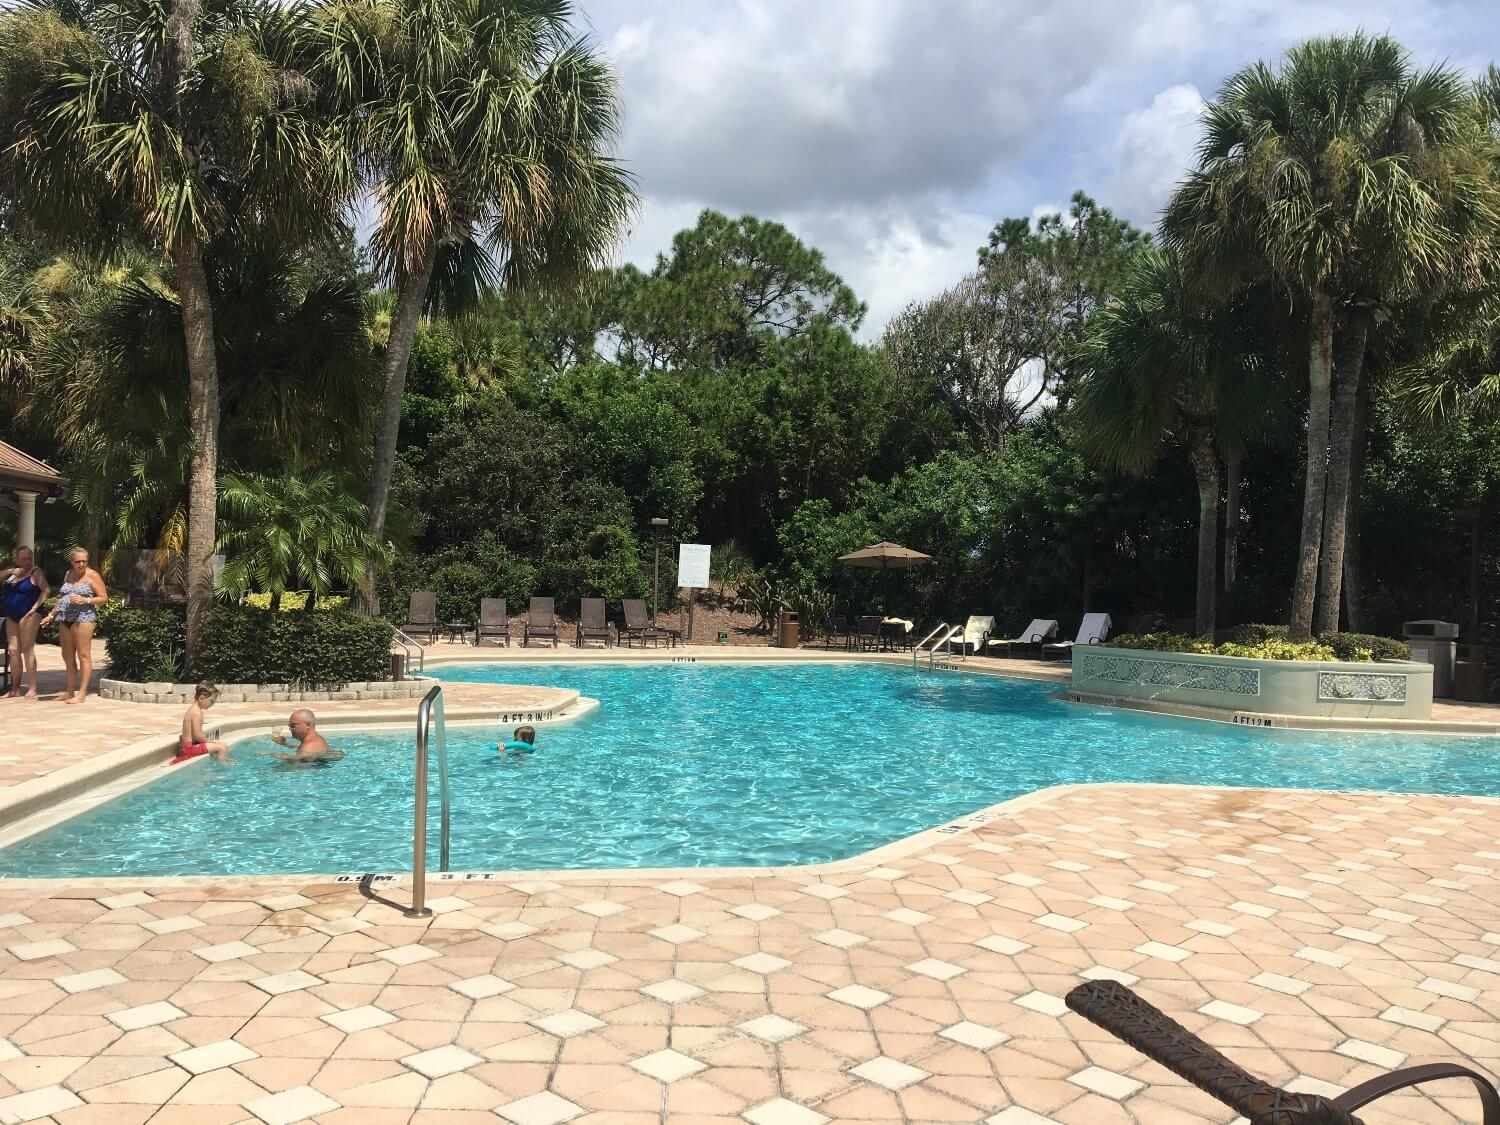 Swimming pool at DoubleTree Suites by Hilton Orlando - Disney Springs Resort Area